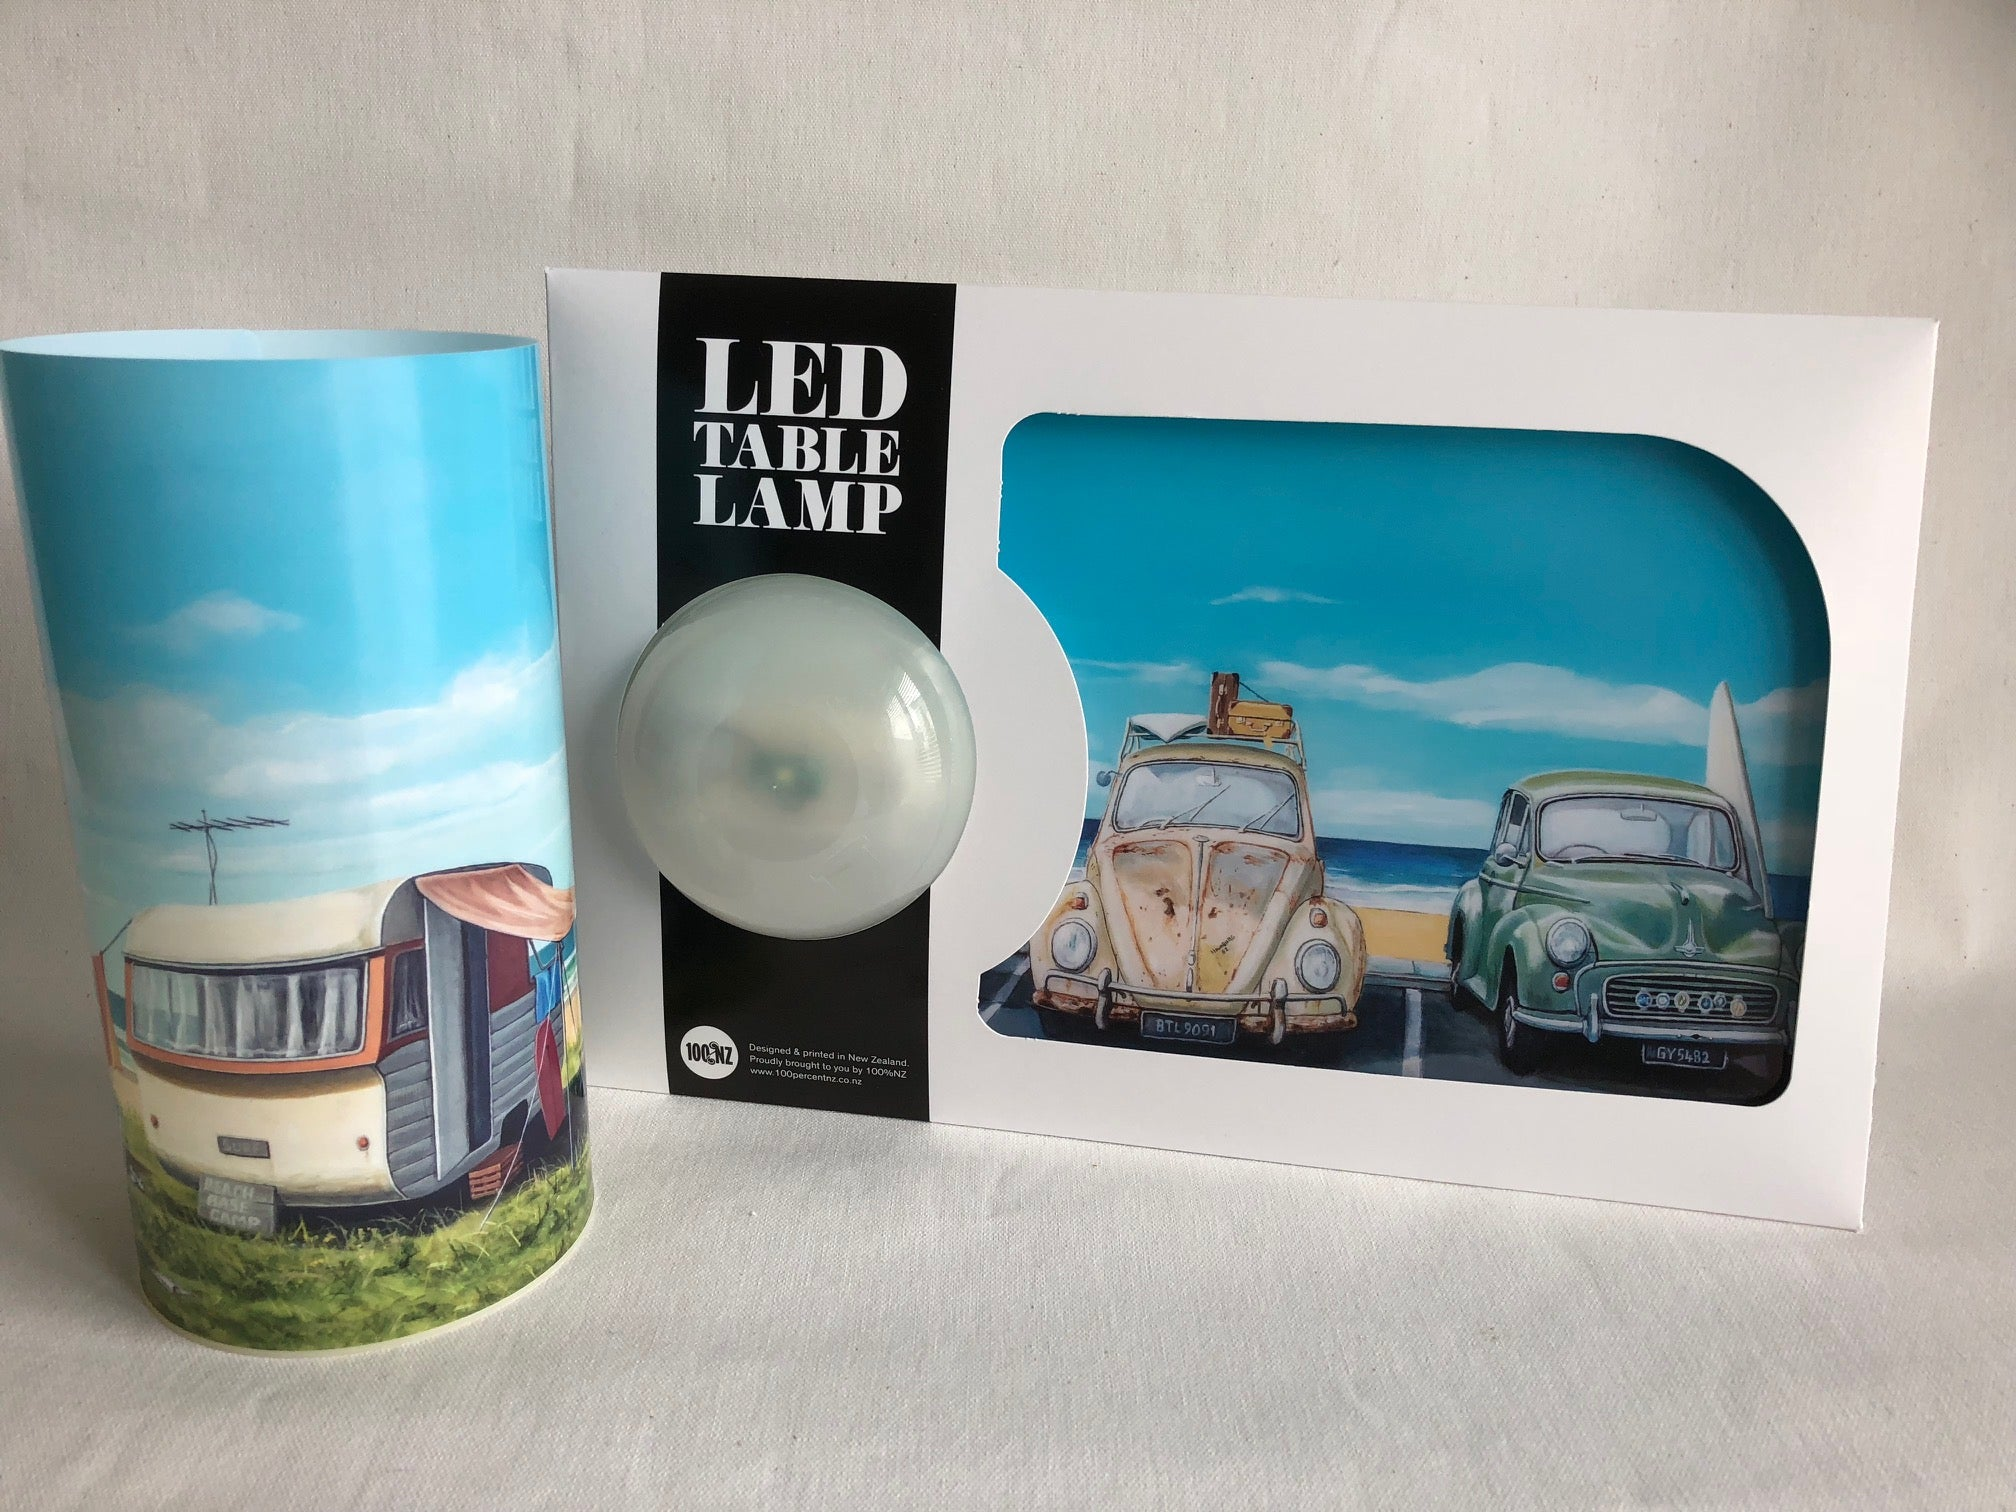 LED Table Lamp - grahamyoungartist.com - Original Artwork and Prints by New Zealand Artist Graham Young